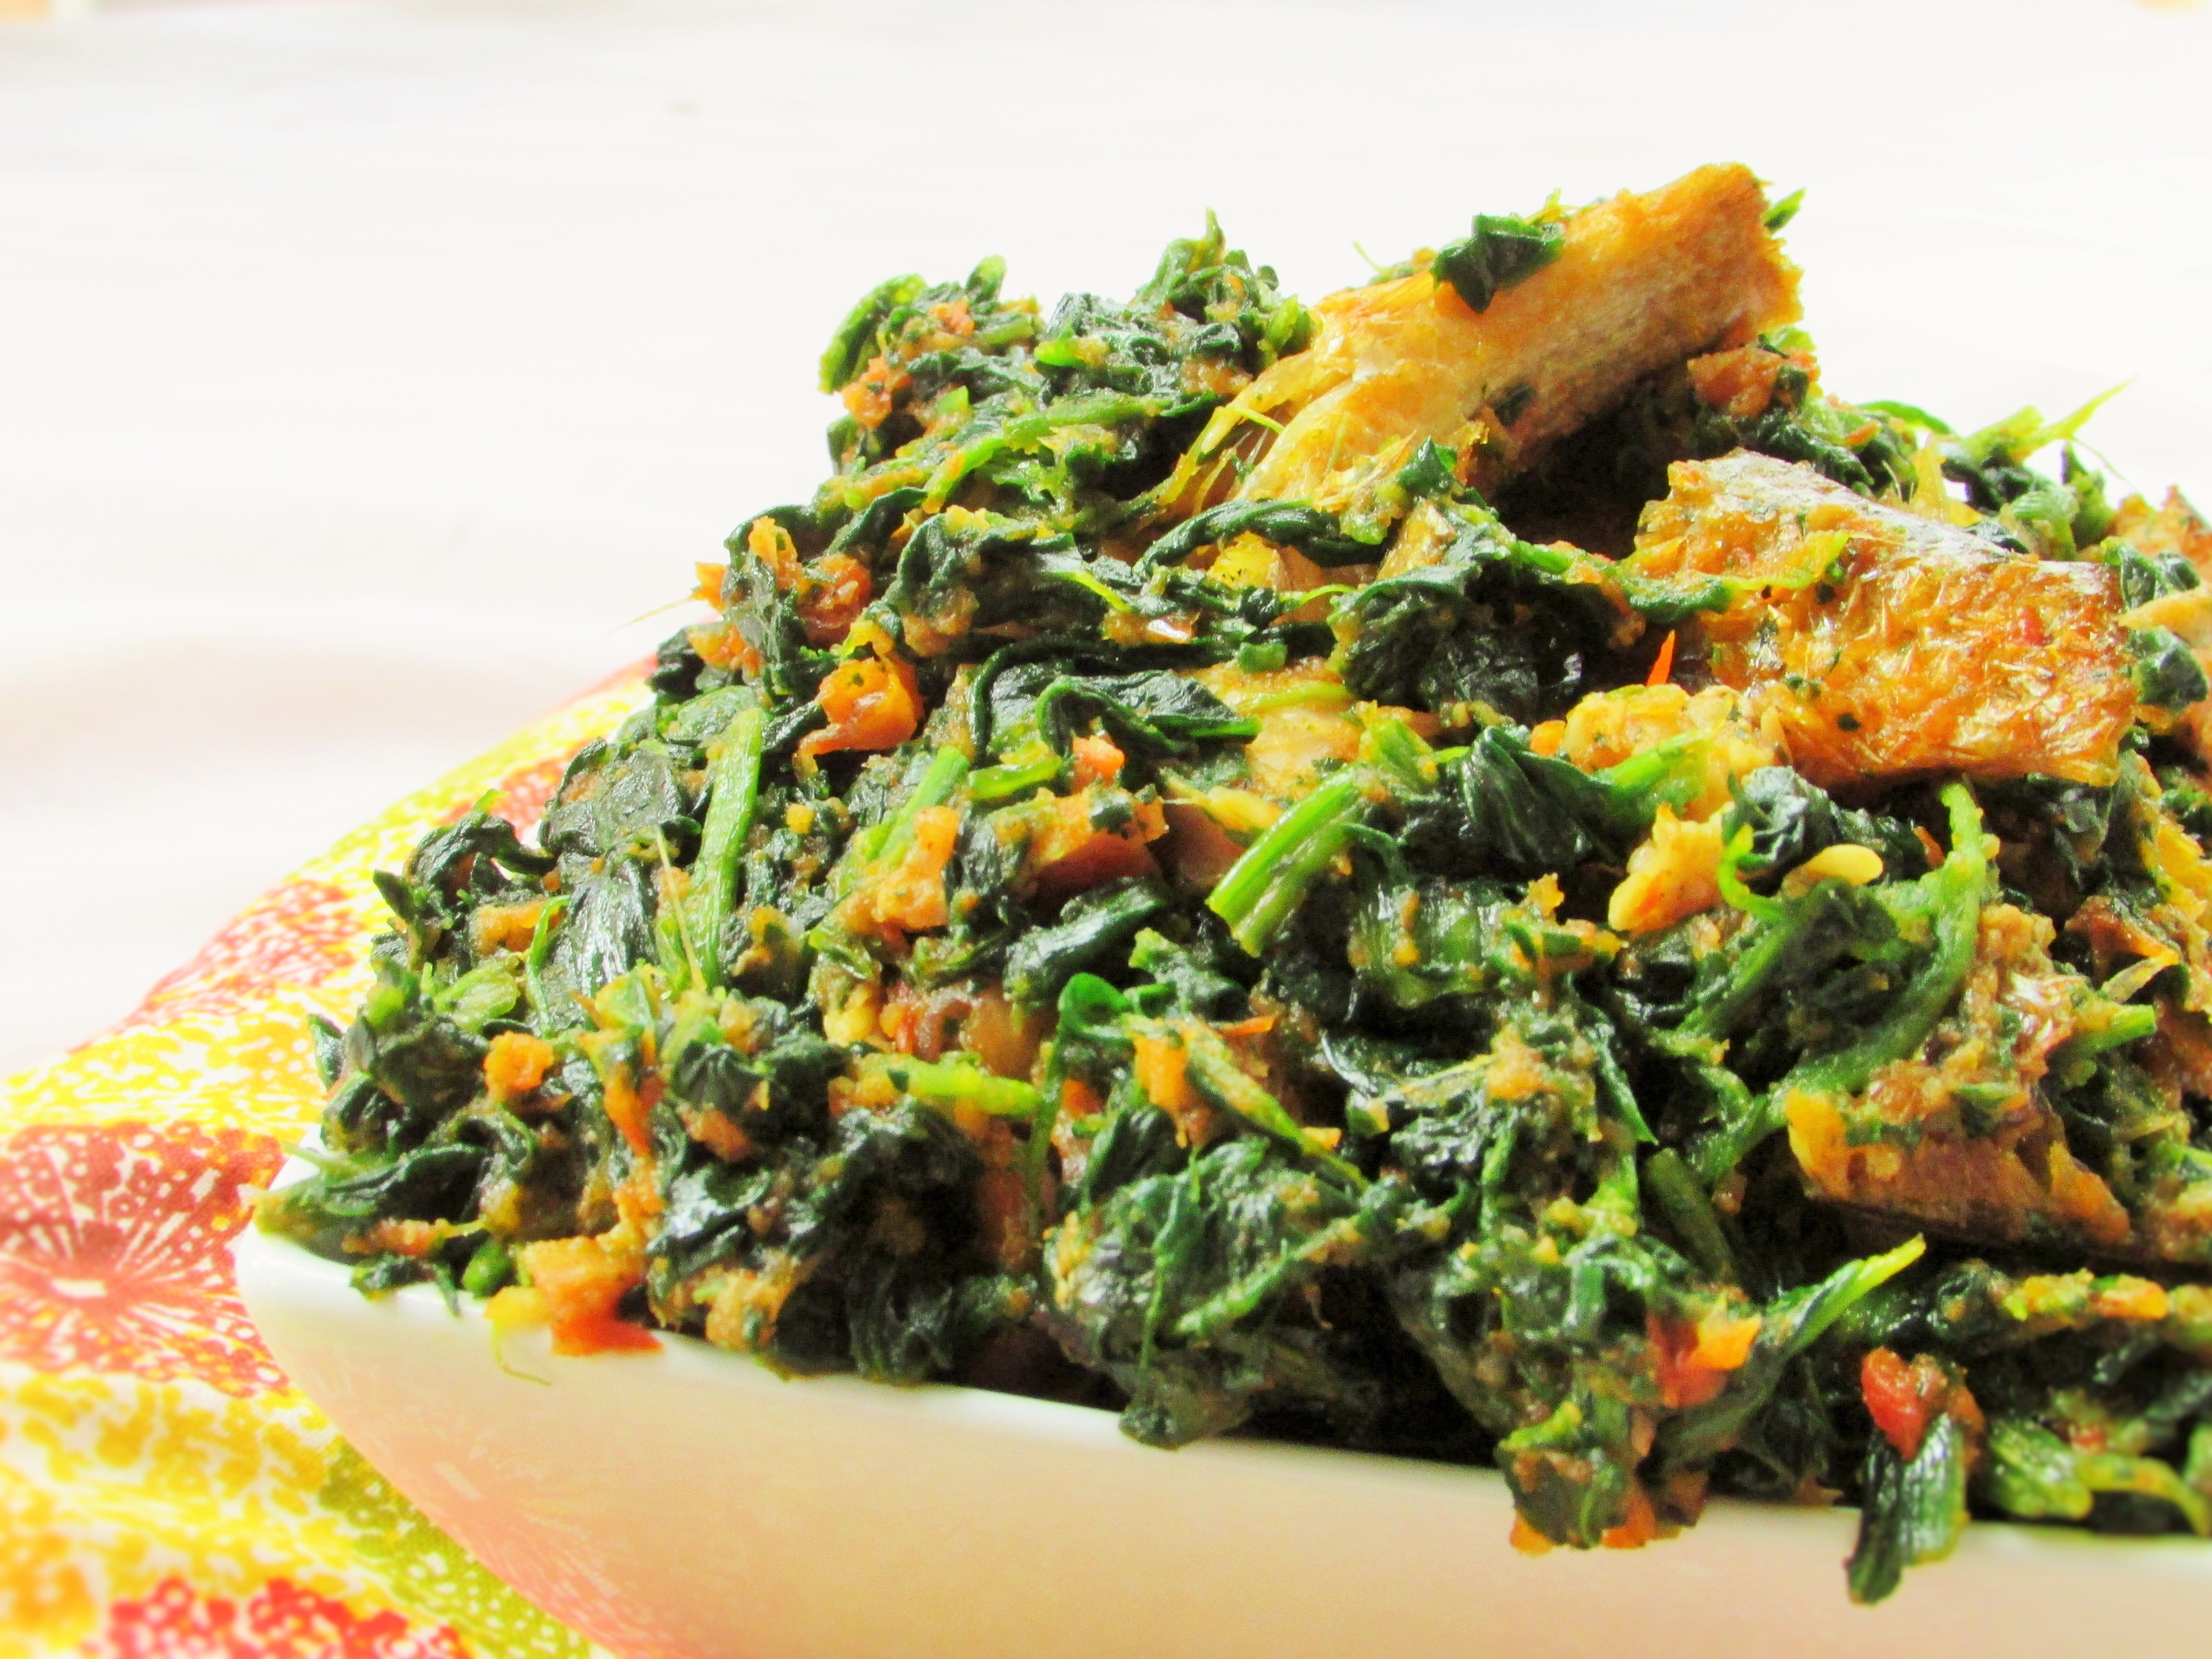 Spinach stew oil less efo riro not your traditional efo riro efo riro is a rich nigerian vegetable soup mainly cooked by the yoruba speaking people of nigeria efo riro can be classified as one of the easiest nigerian forumfinder Images